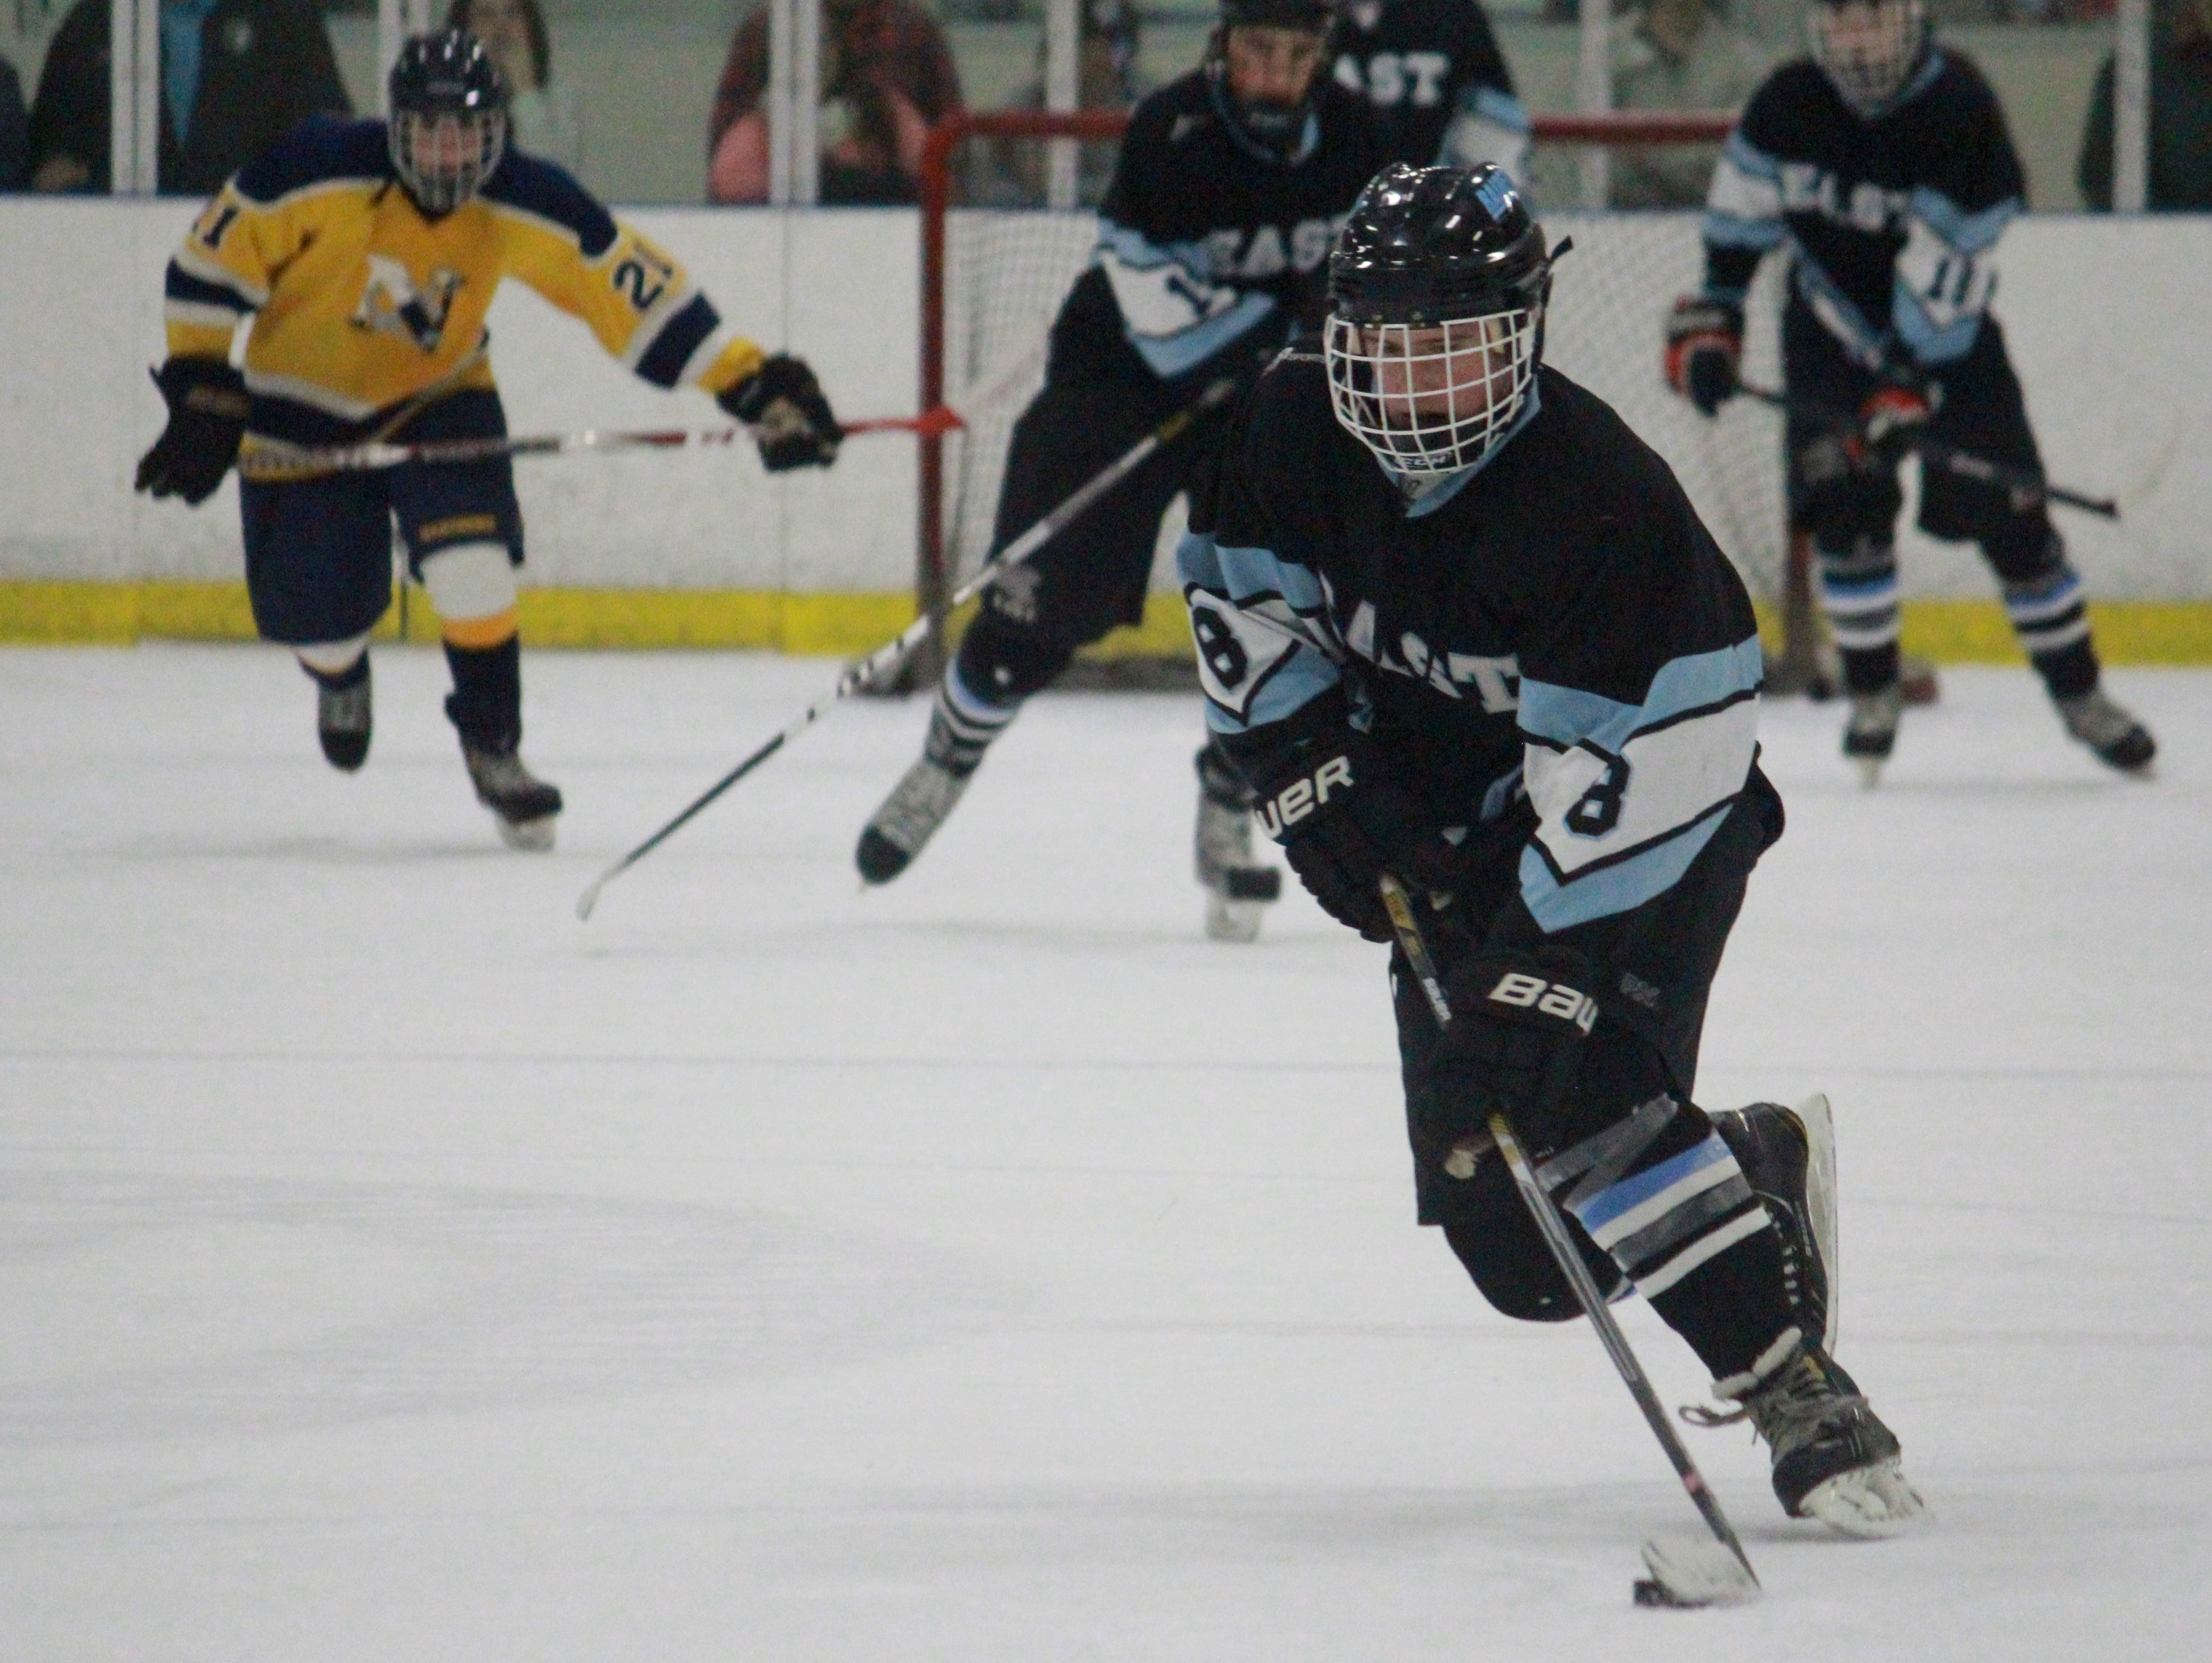 Pat Hoffman carries the puck for Toms River East last year against Toms River North.